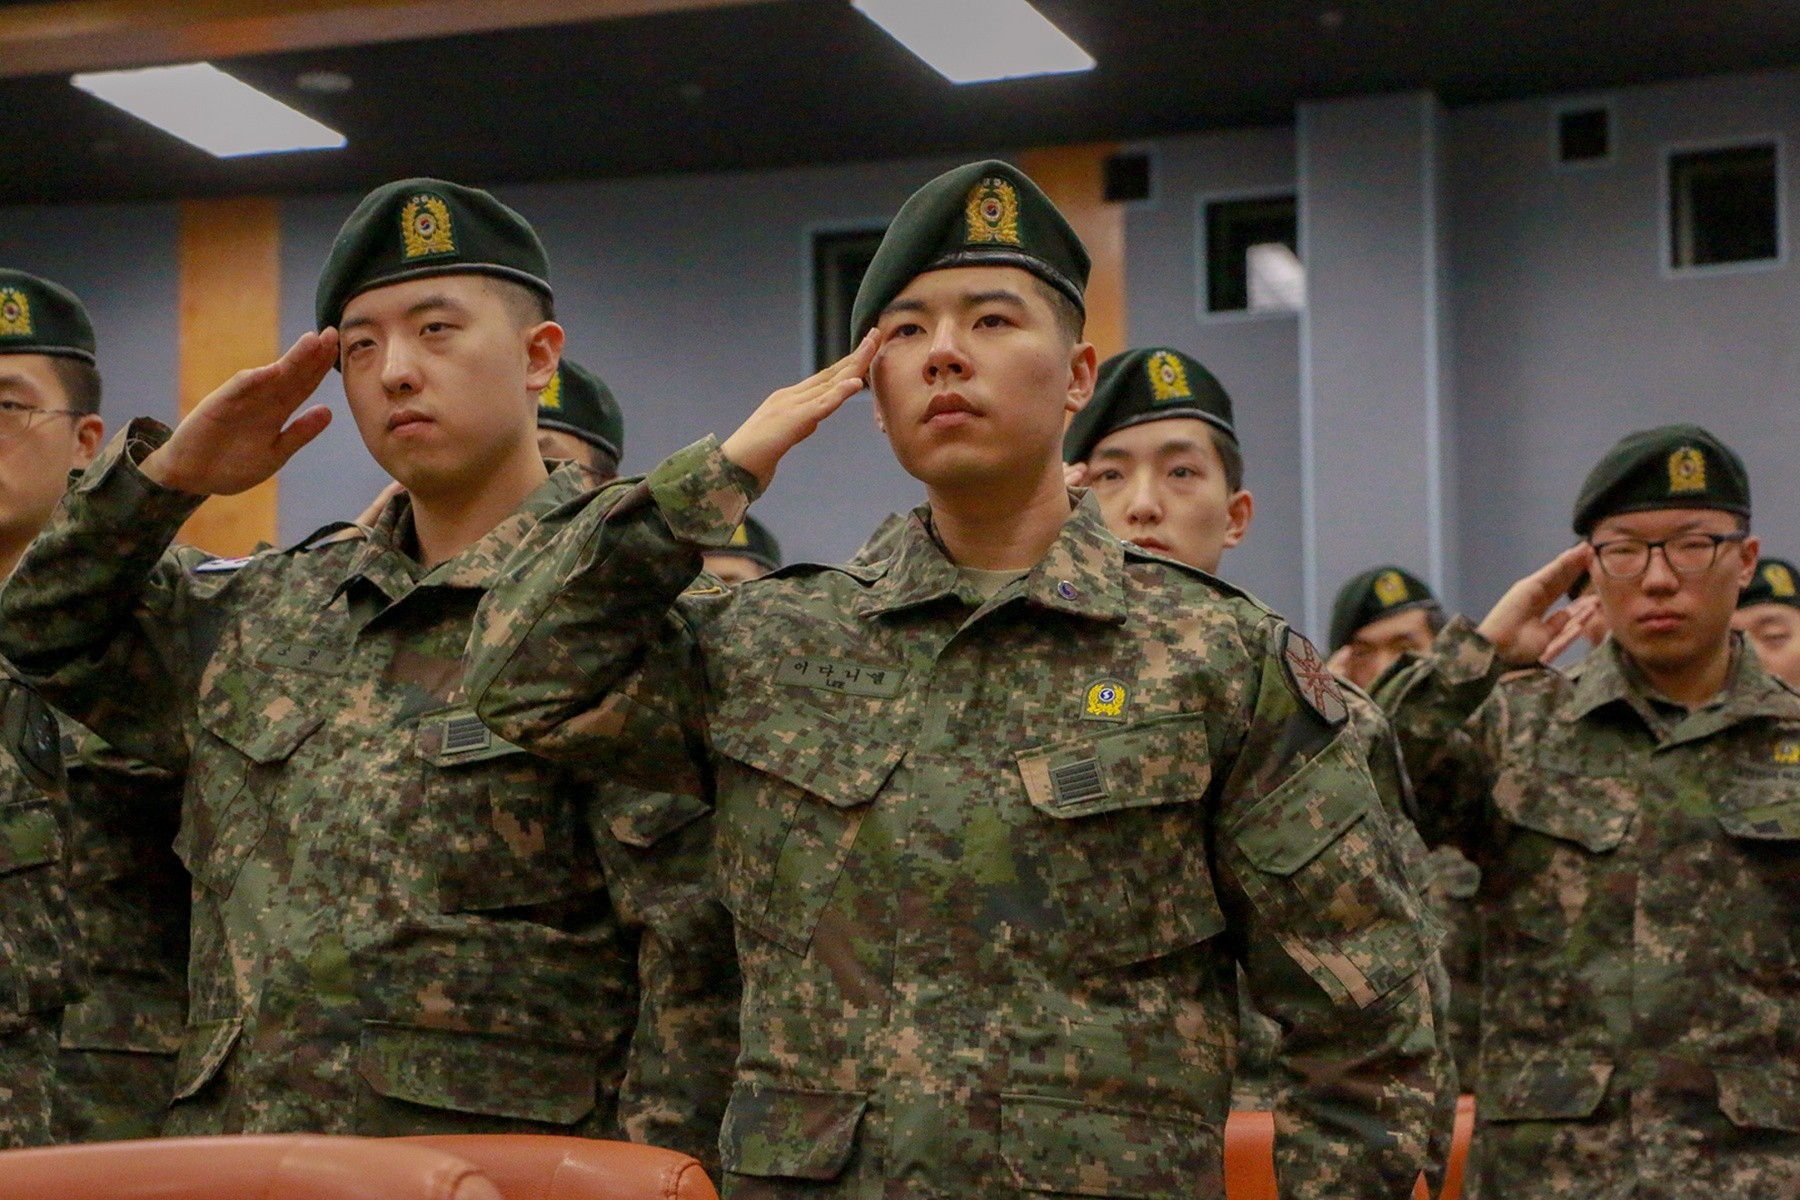 US to suspend military exercises with South Korea, Trump says